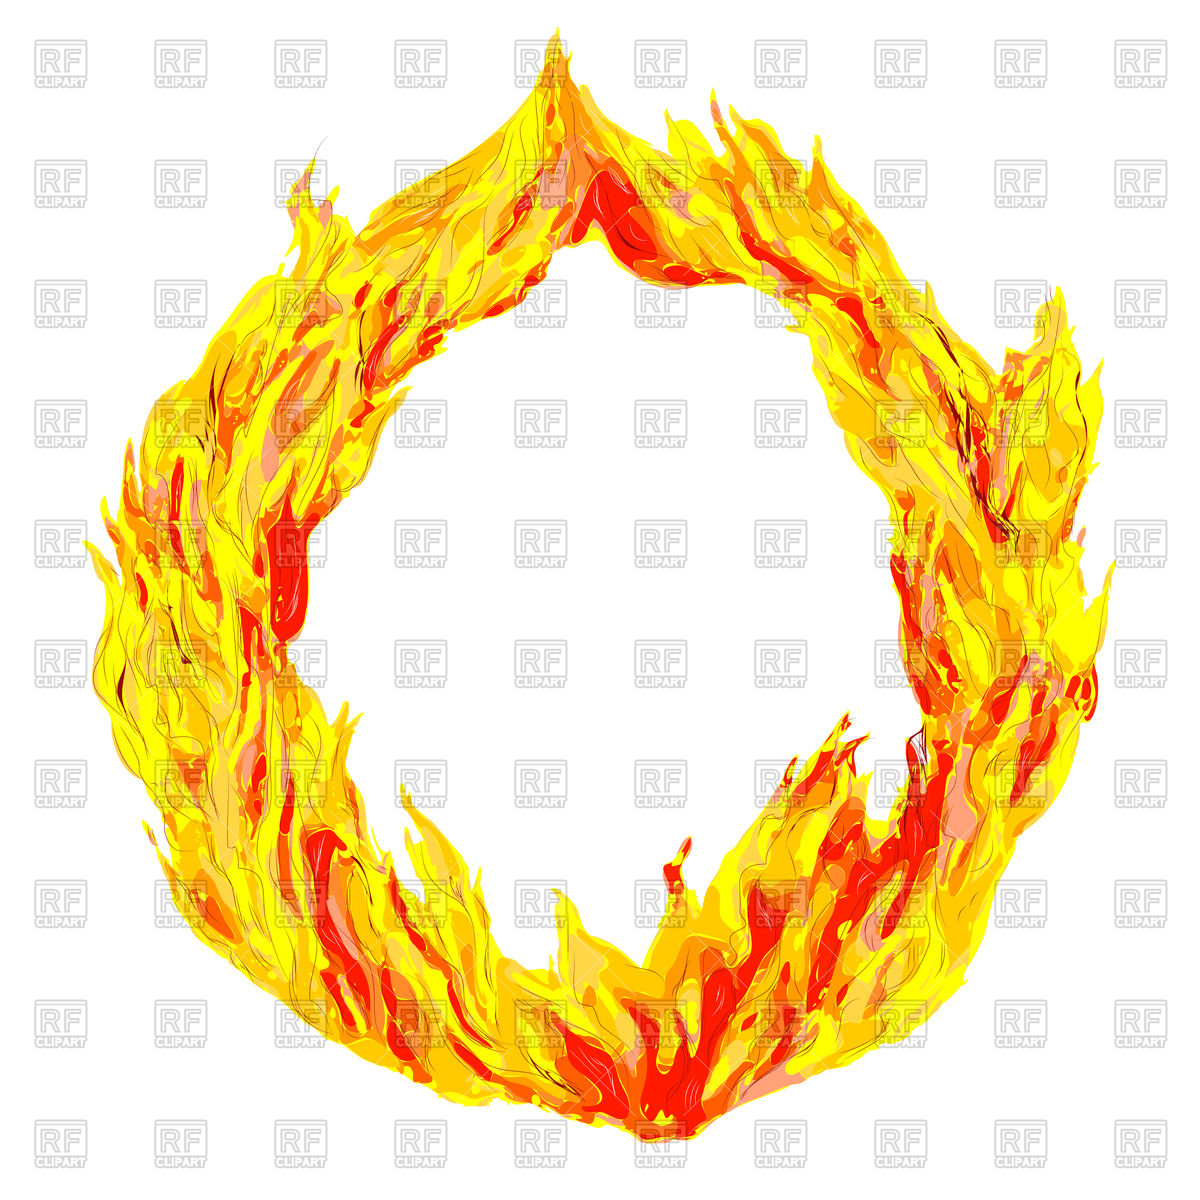 Circle of fire Vector Image #75696.